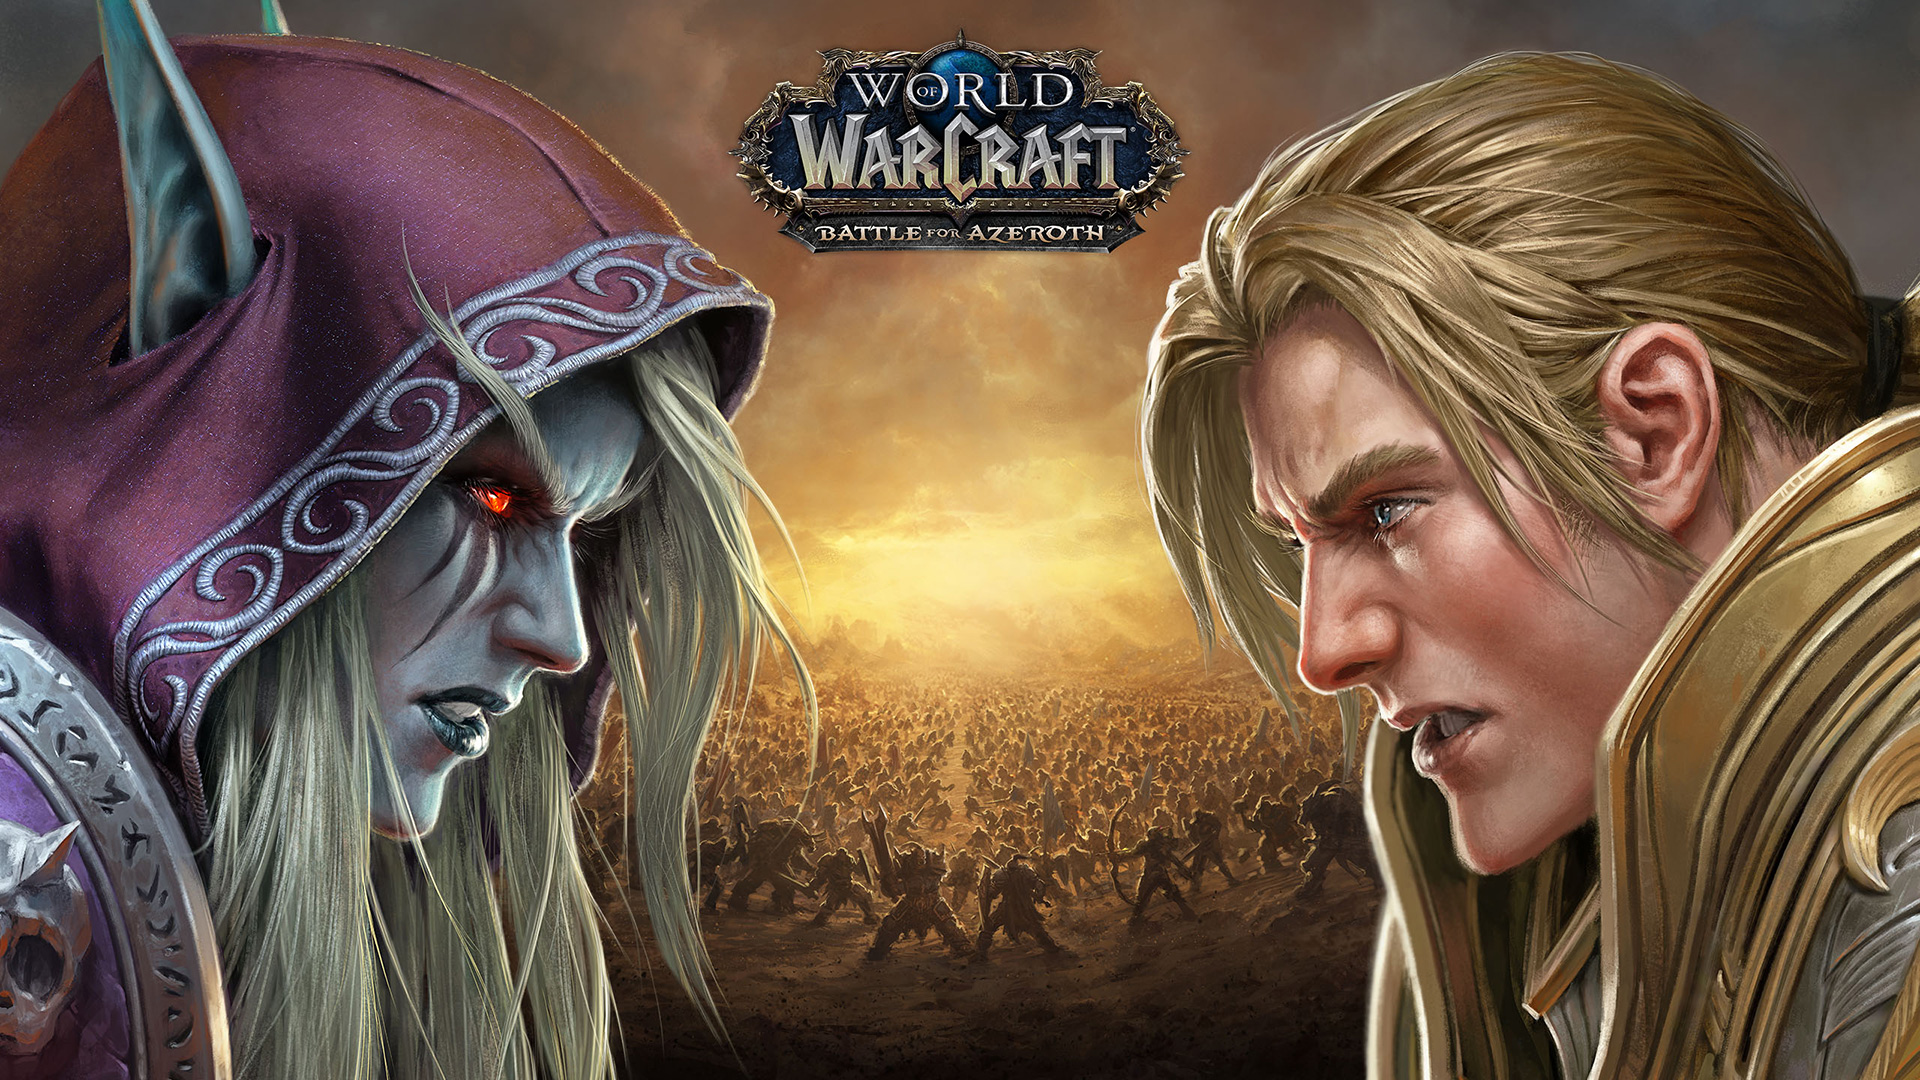 world of warcraft: battle for azeroth wallpaper face-off 1